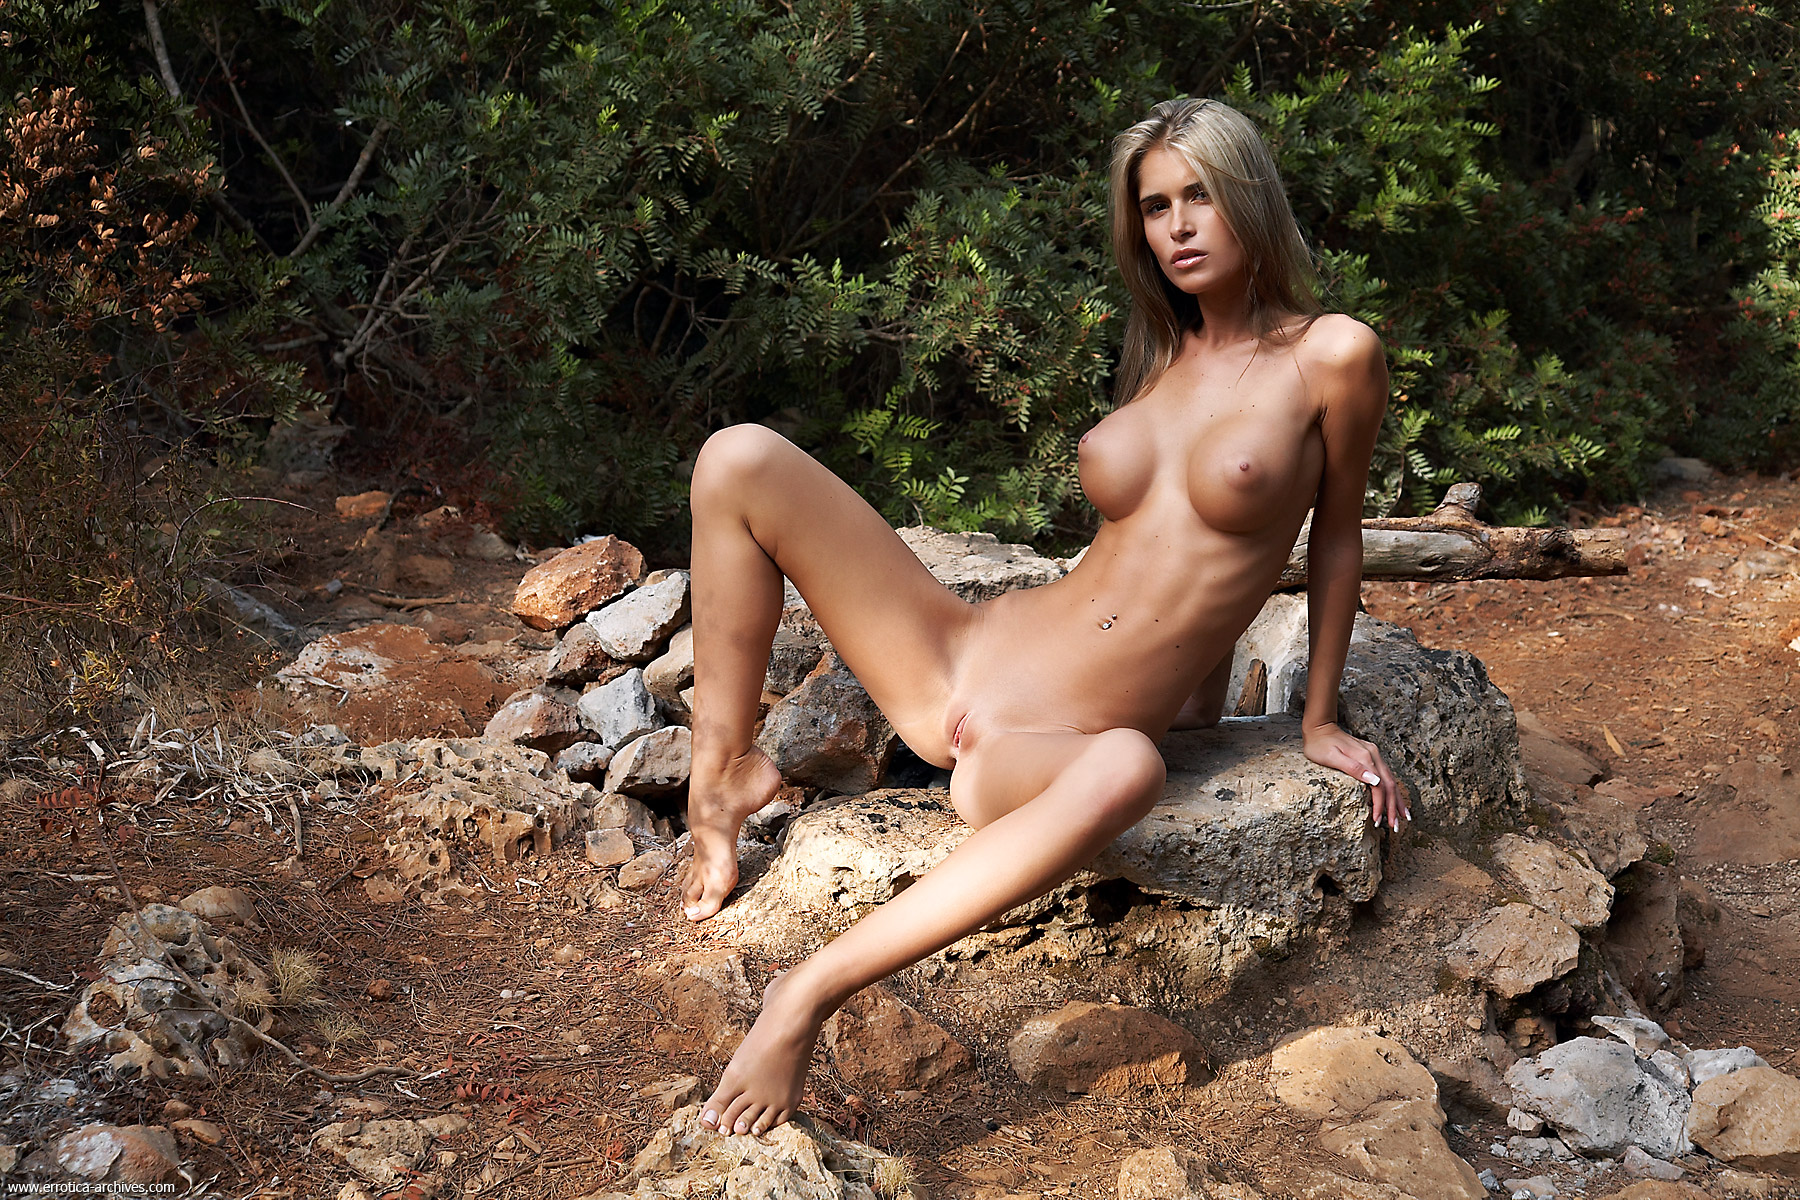 erotic nude women woods